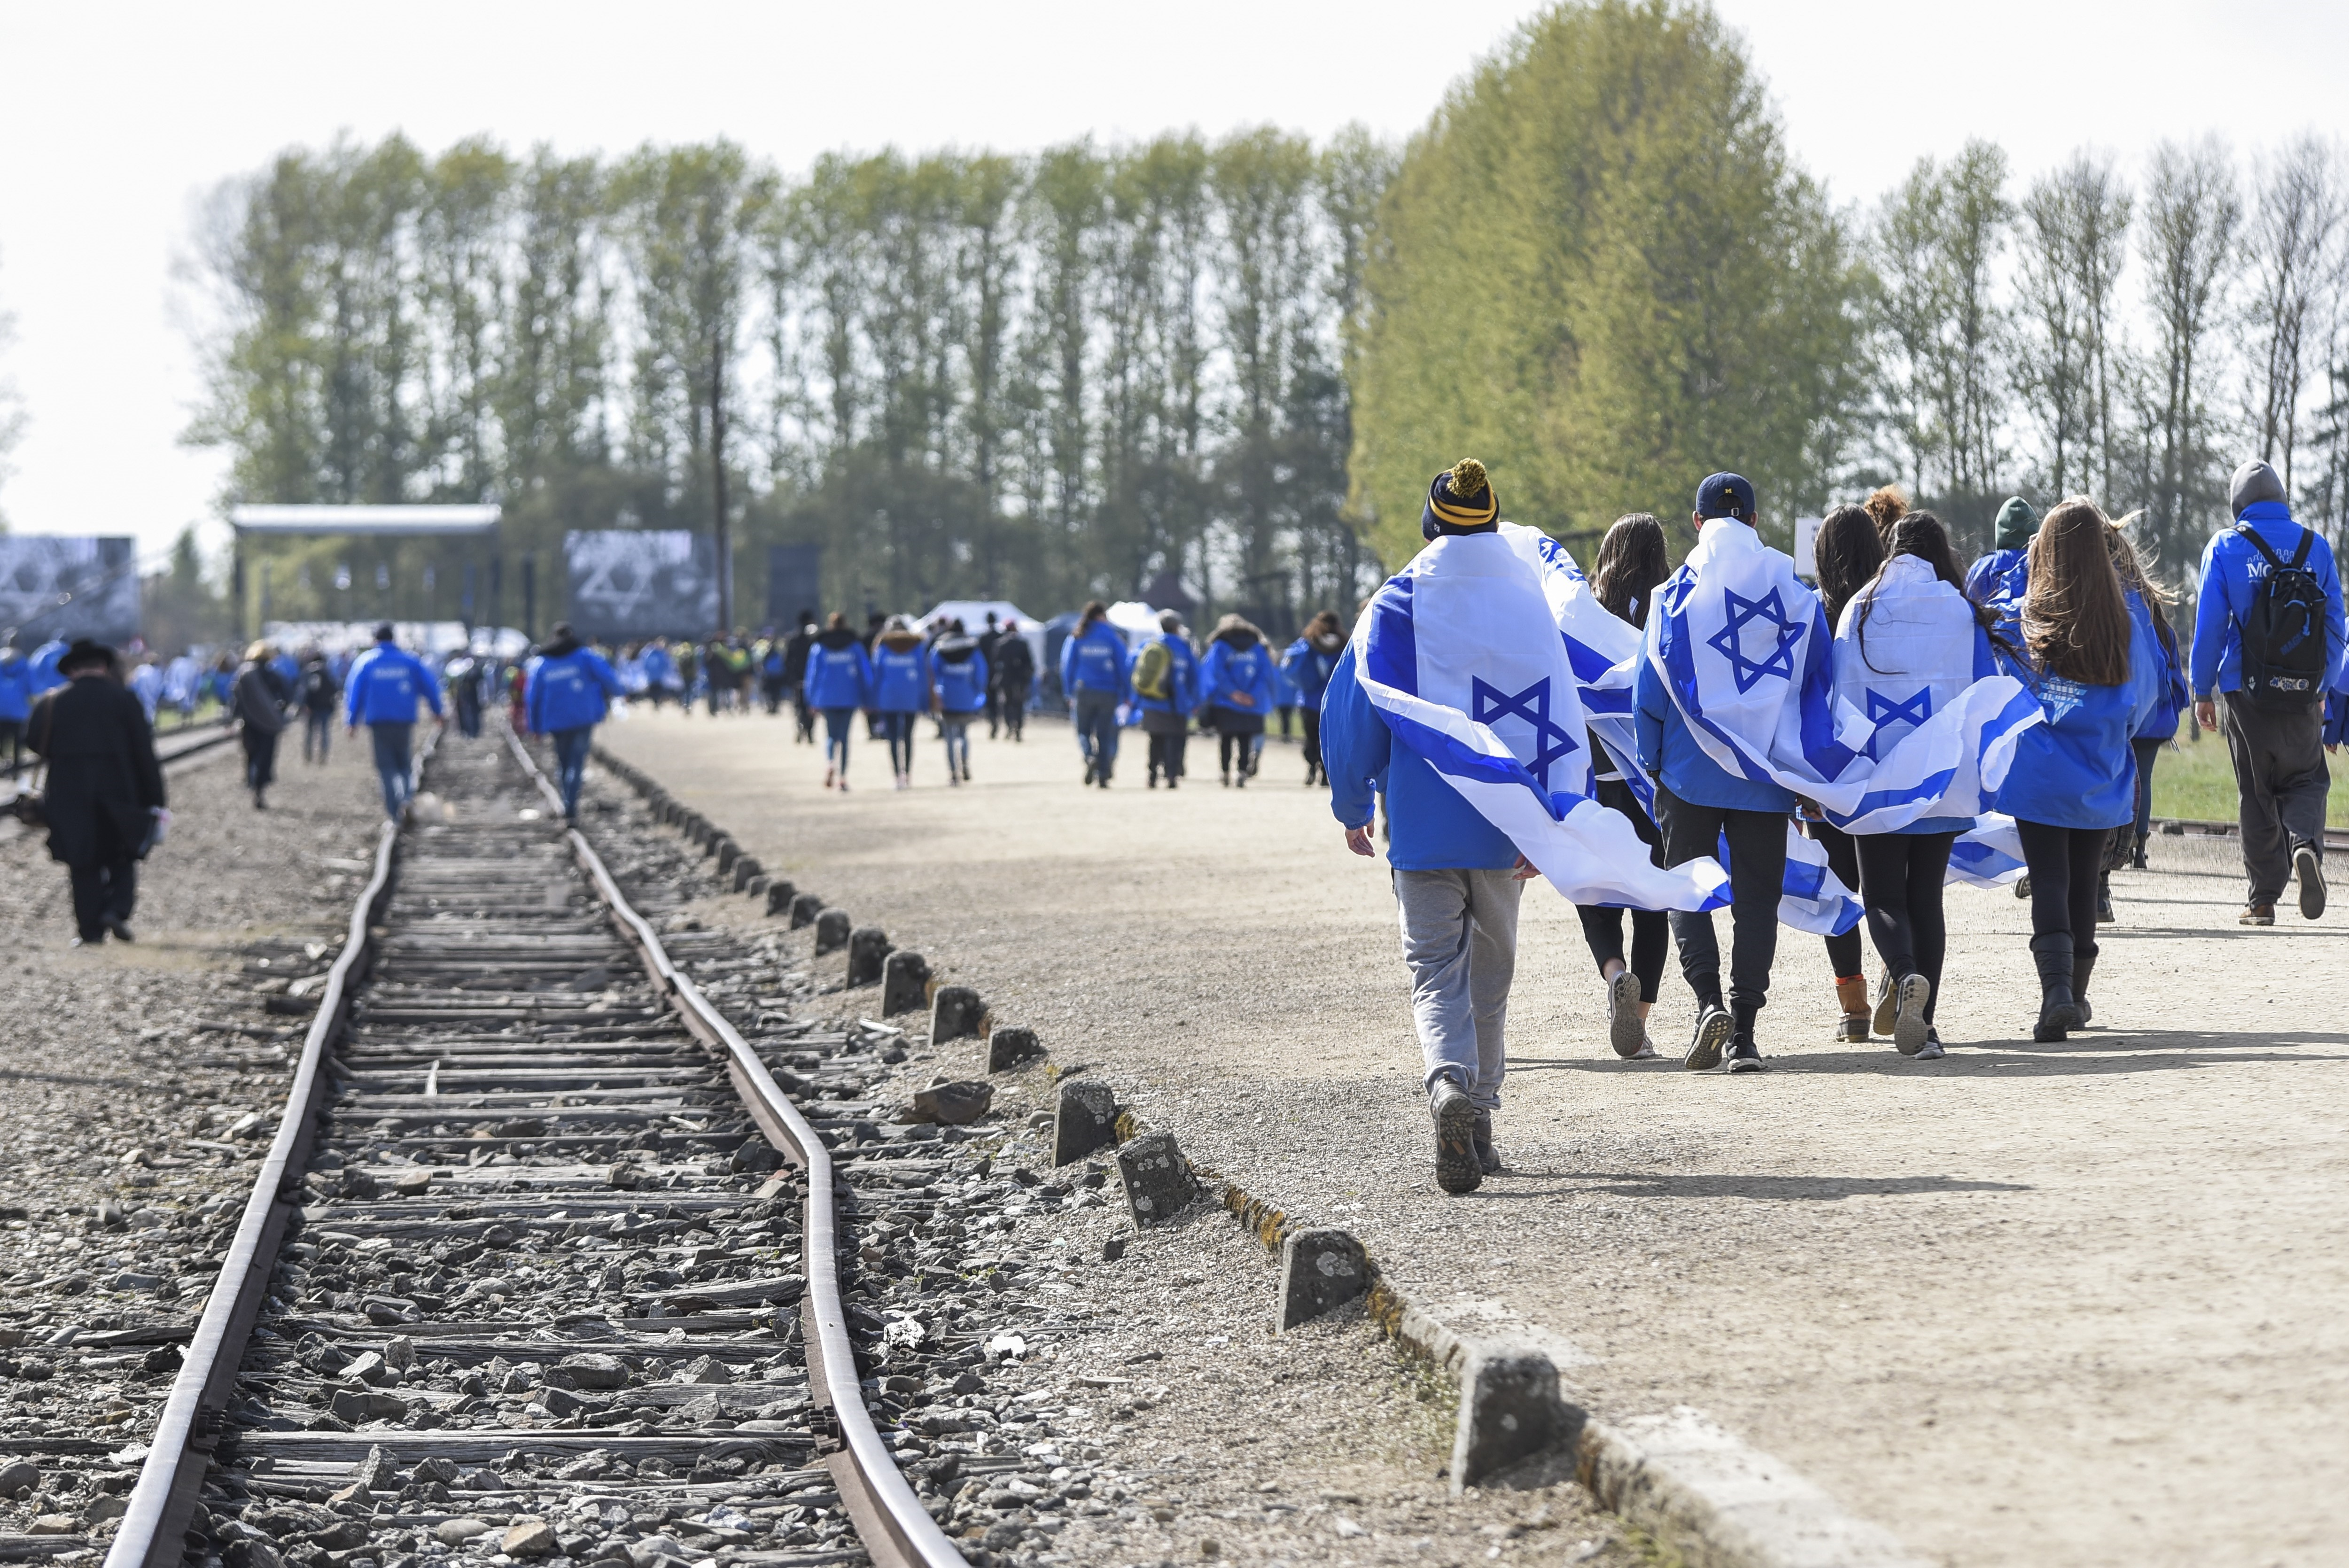 Will Israels clash with Poland affect Holocaust